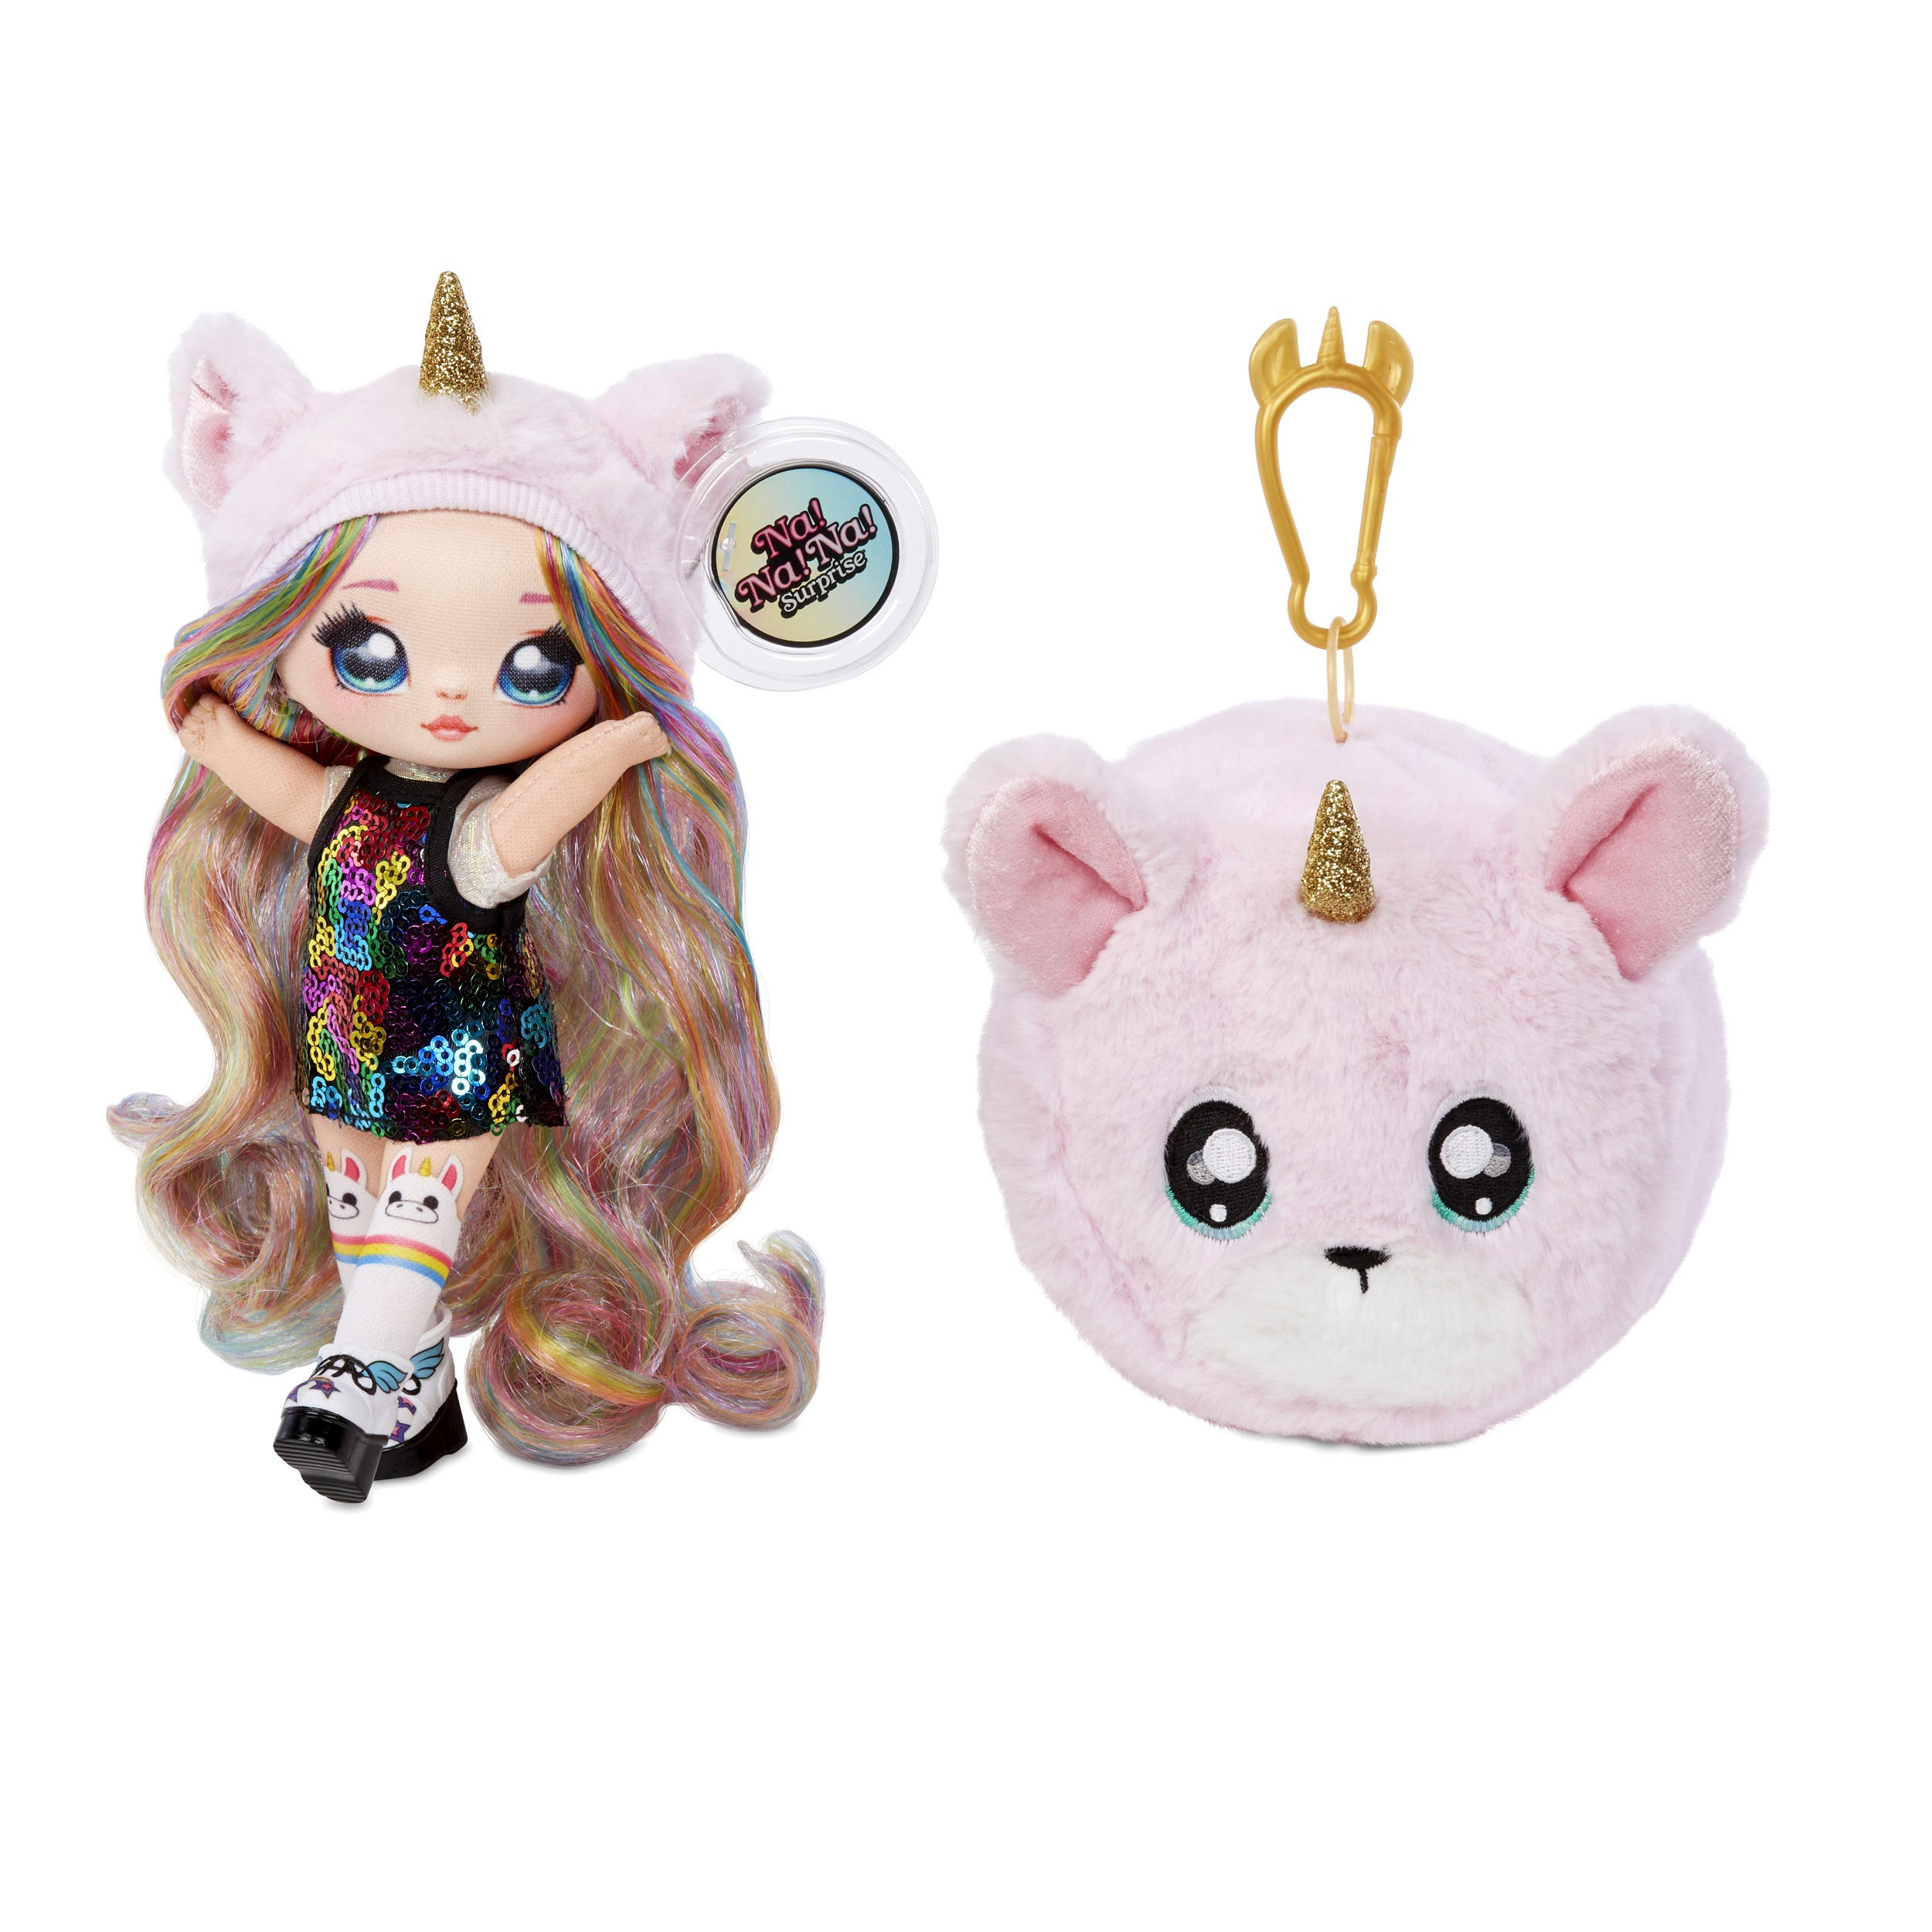 Na! Na! Na! Surprise 2-in-1 Fashion Doll & Pom Purse with Confetti Balloon Unboxing (Styles May Vary)